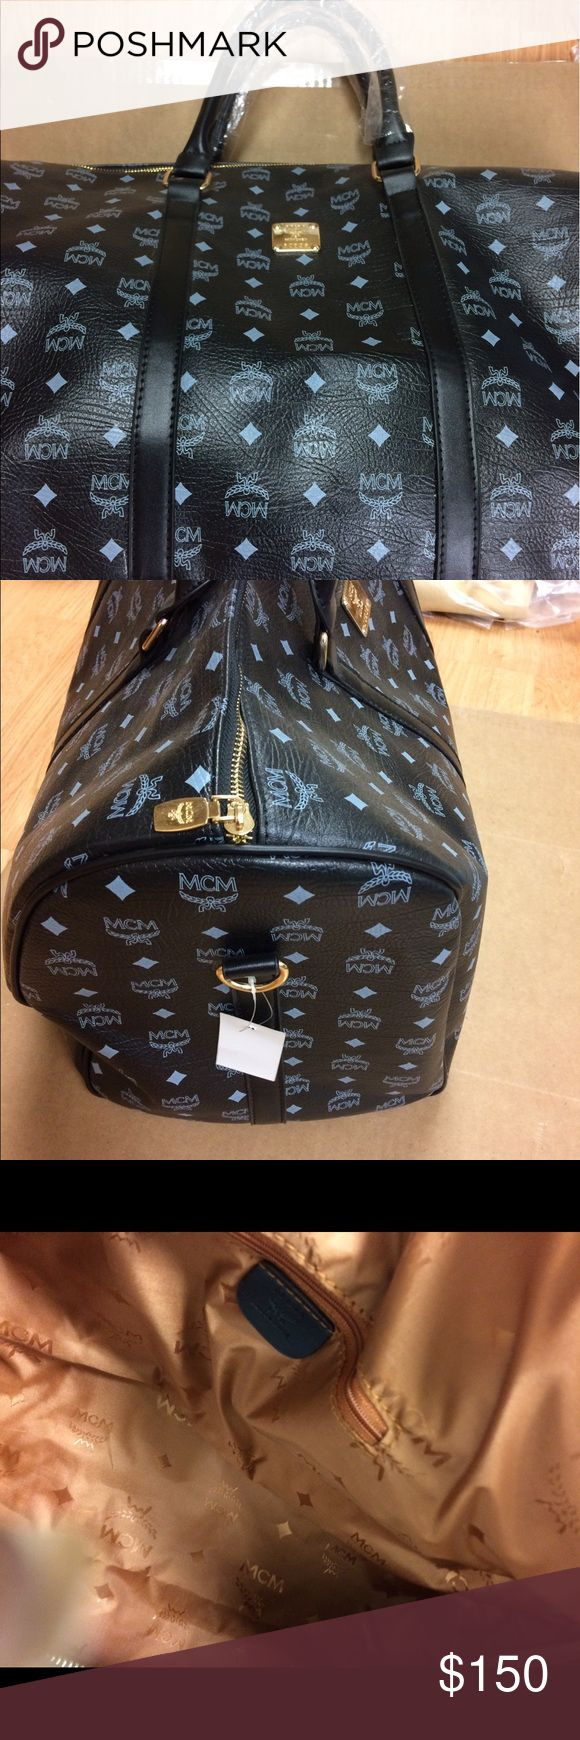 Luggage bag Designer luggage bag new with tags it is not authentic that's why the price is low MCM Bags Travel Bags